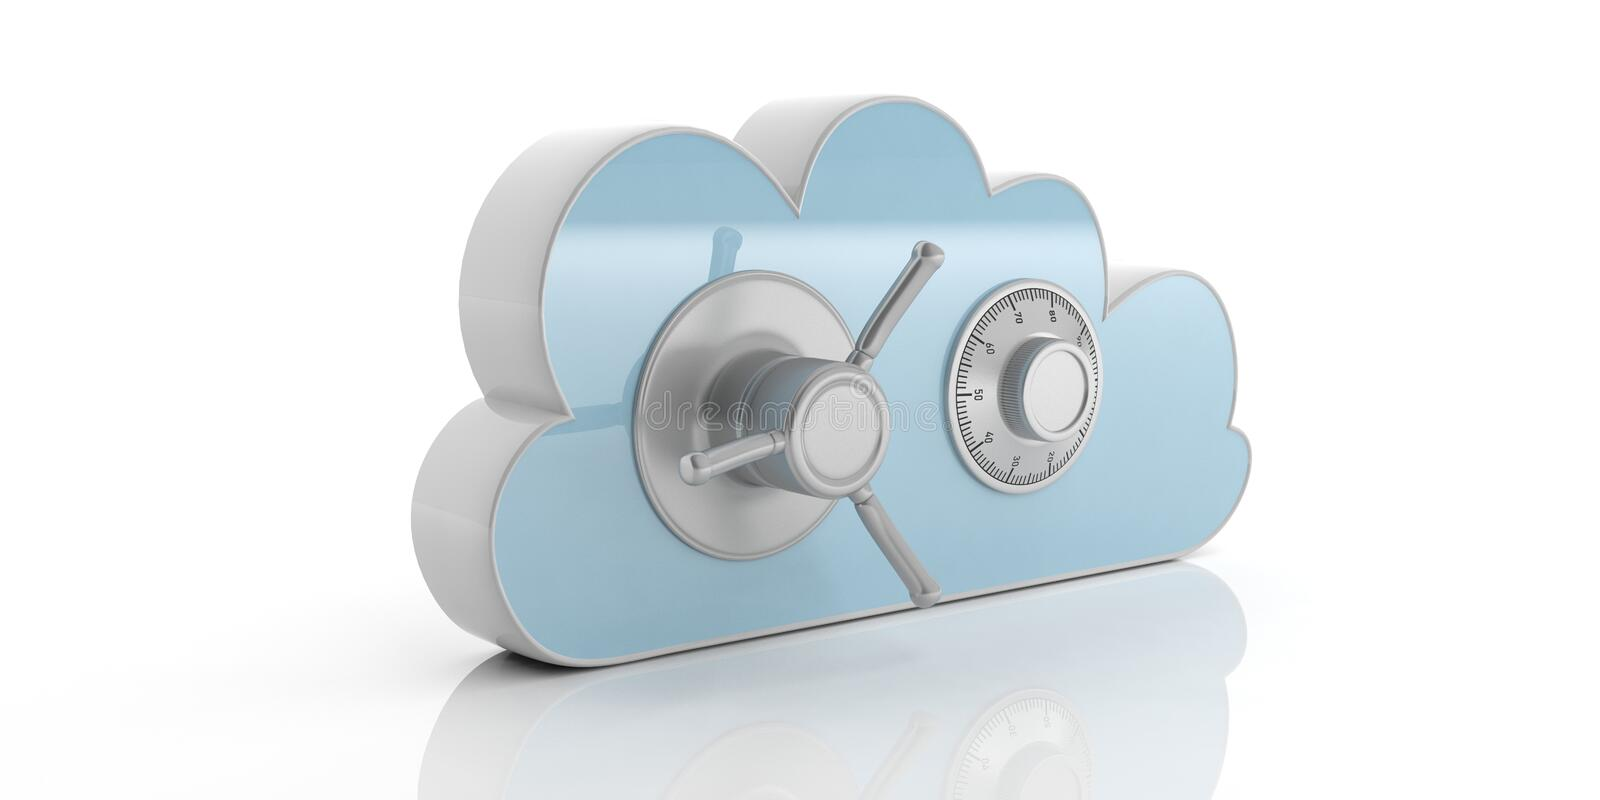 Cloud data computer combination lock safe, isolated, cyan on a white background. 3d illustration. royalty free illustration